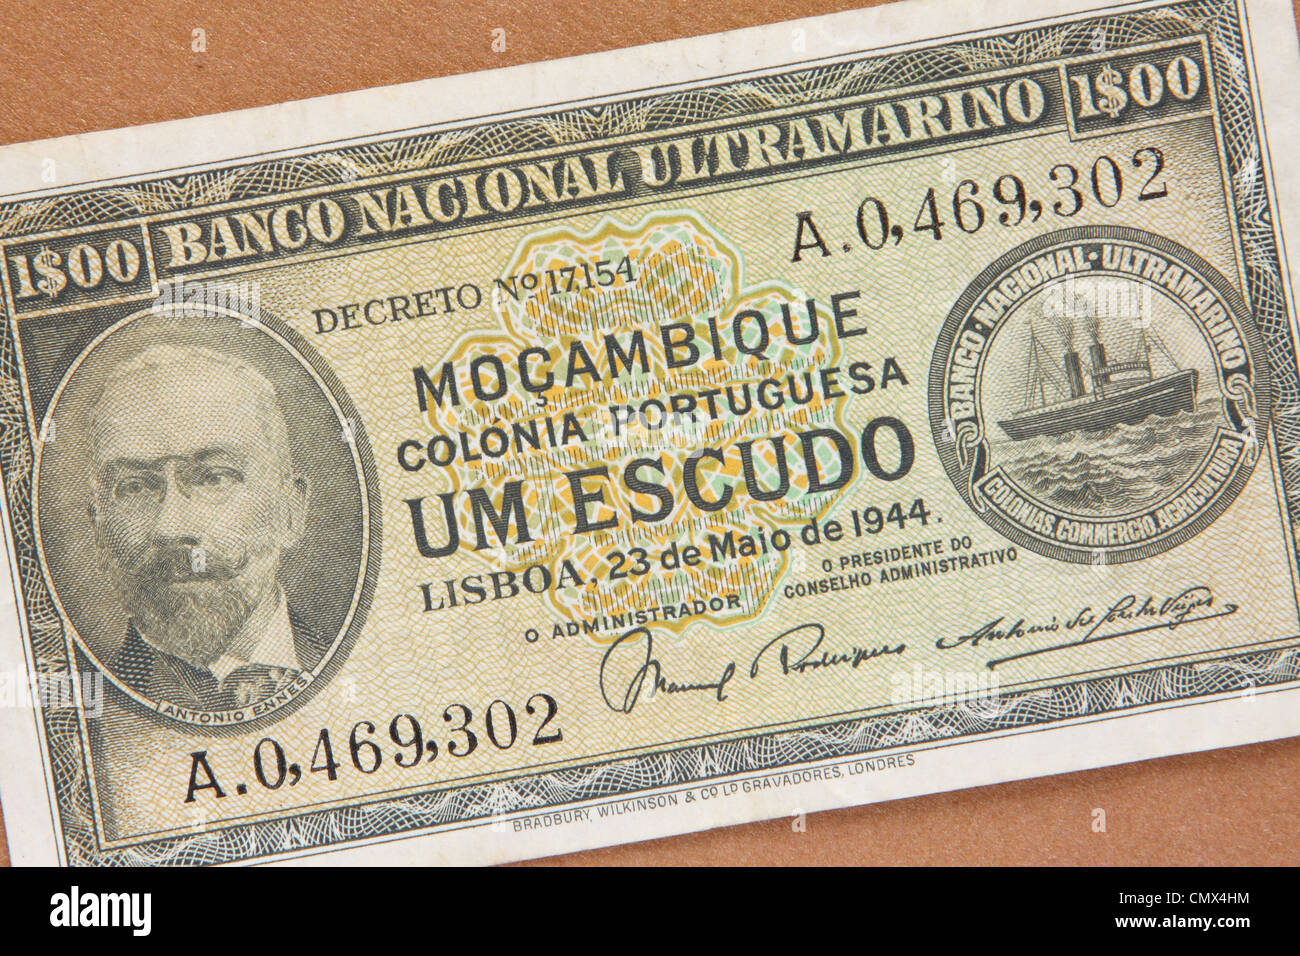 Mozambique - bank note from the former Portuguese colony of Mozambique Mocambique dated 1944 issued in Lisbon - Stock Image